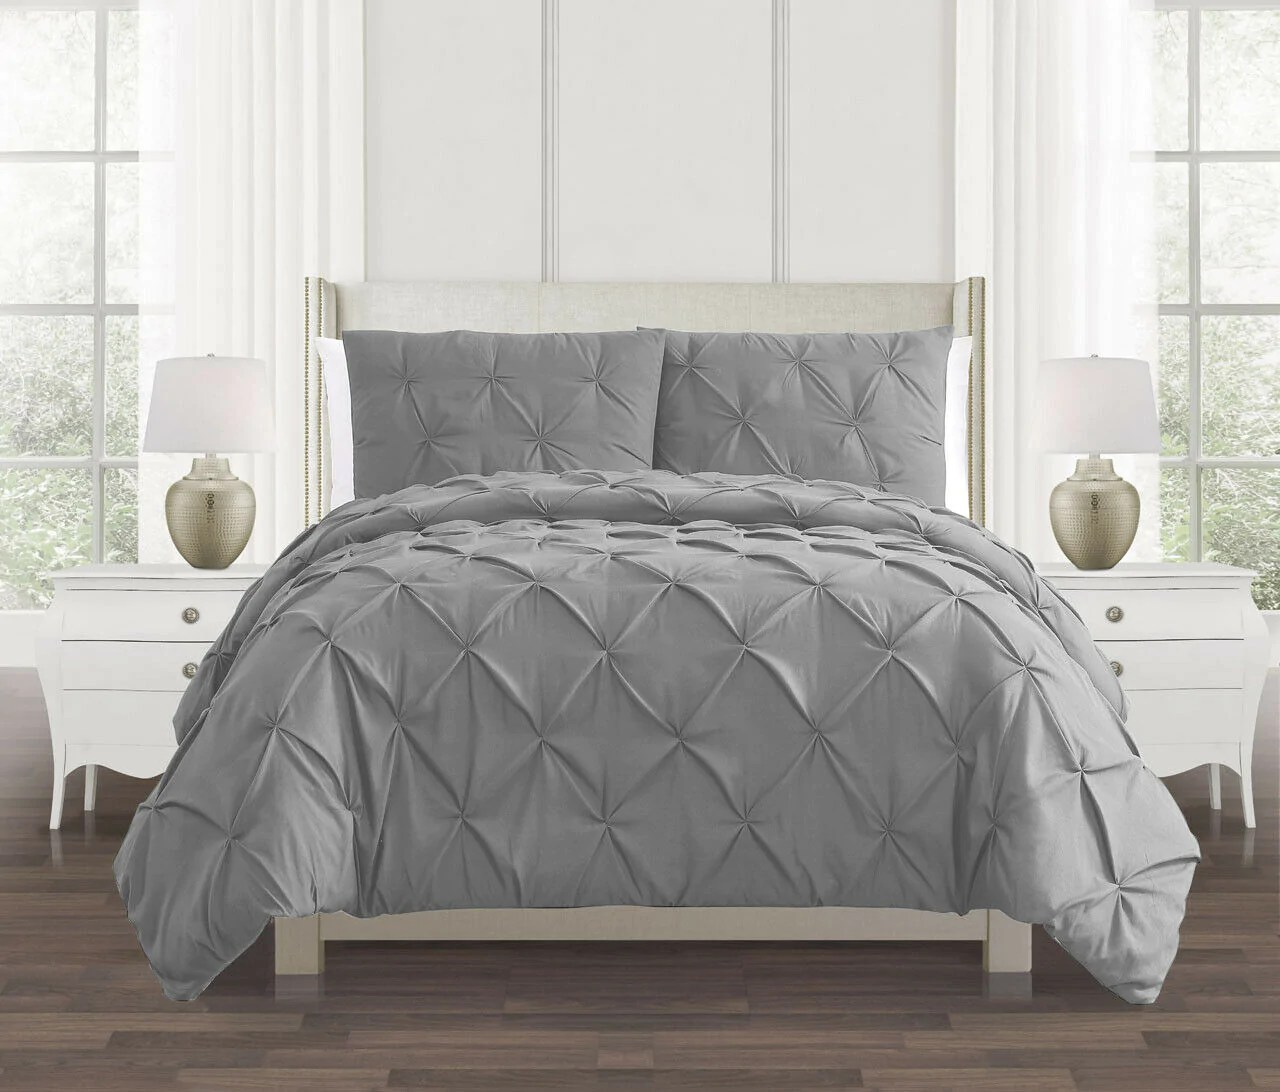 silver grey pin tuck duvet cover 100 cotton covers bedding set double king super king bed size